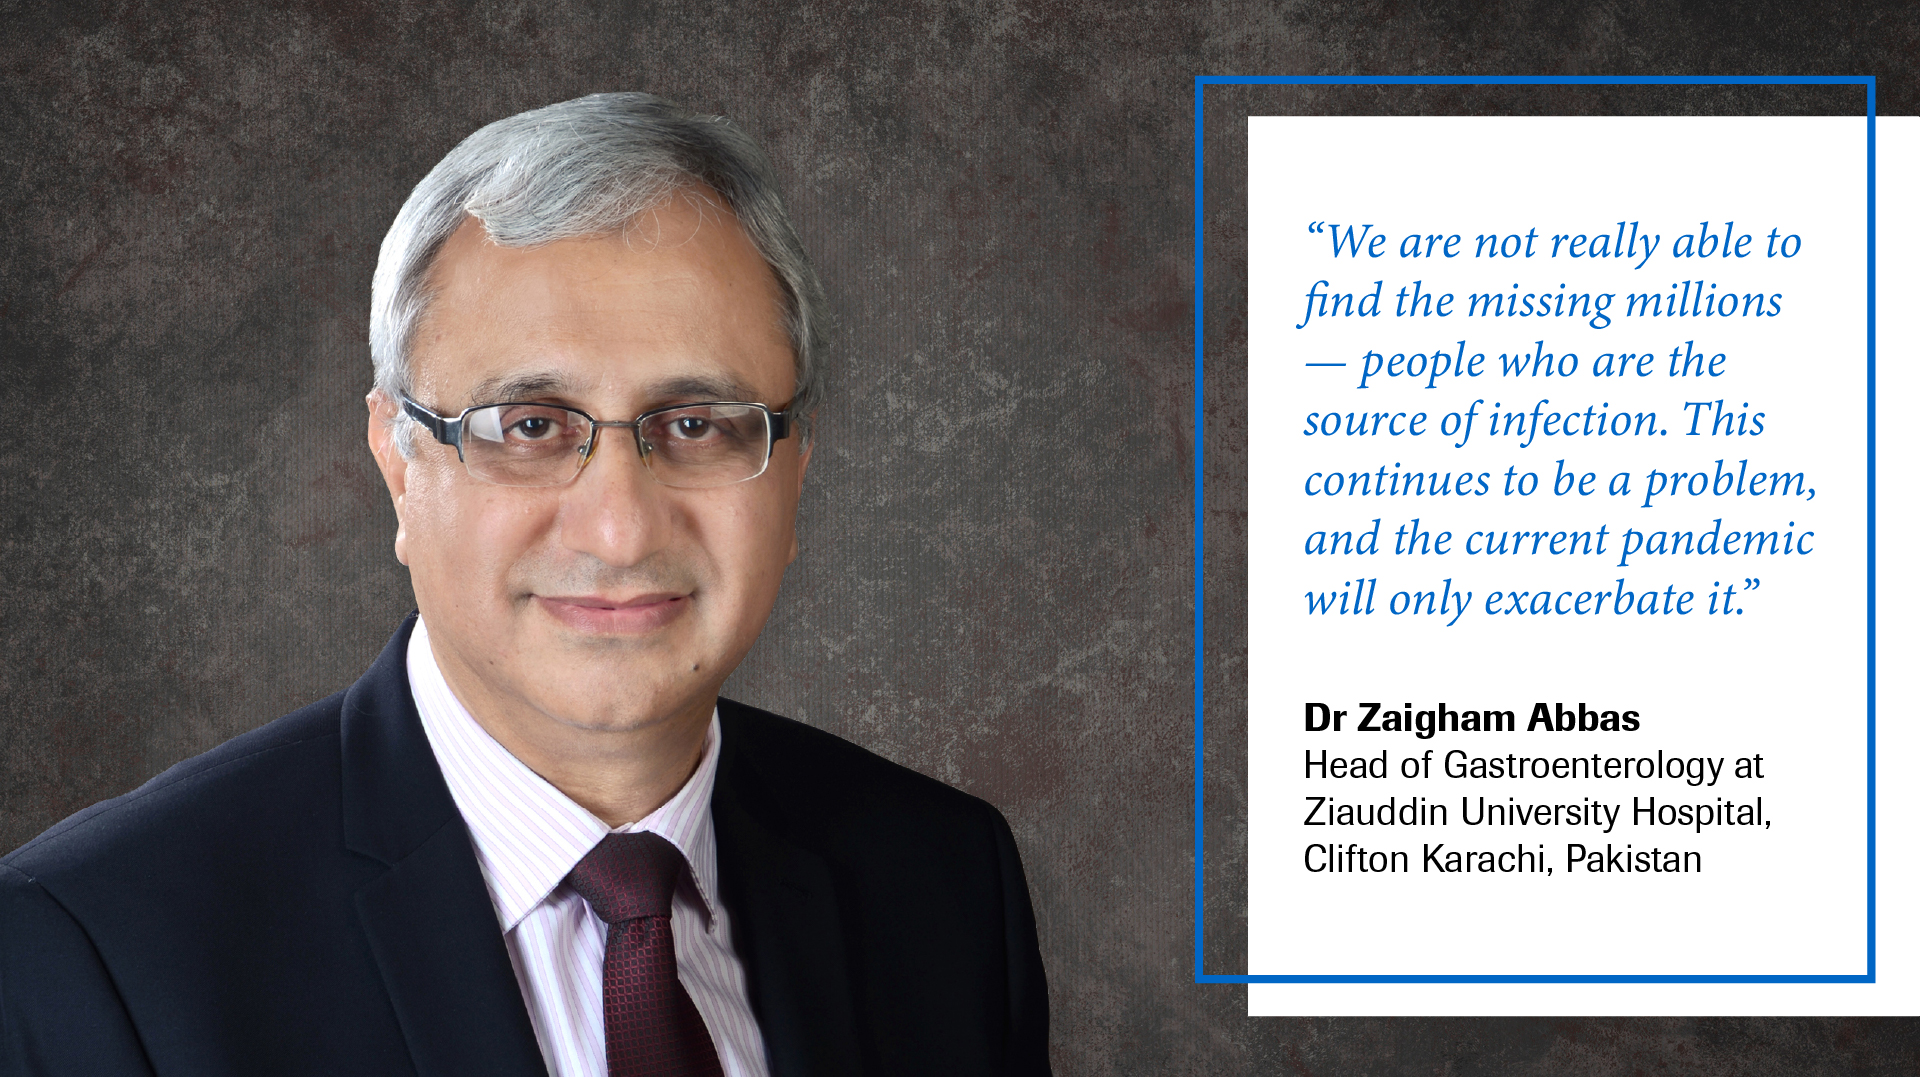 A quote from Dr Zaigham Abbas exploring issues around hepatitis screening during the pandemic